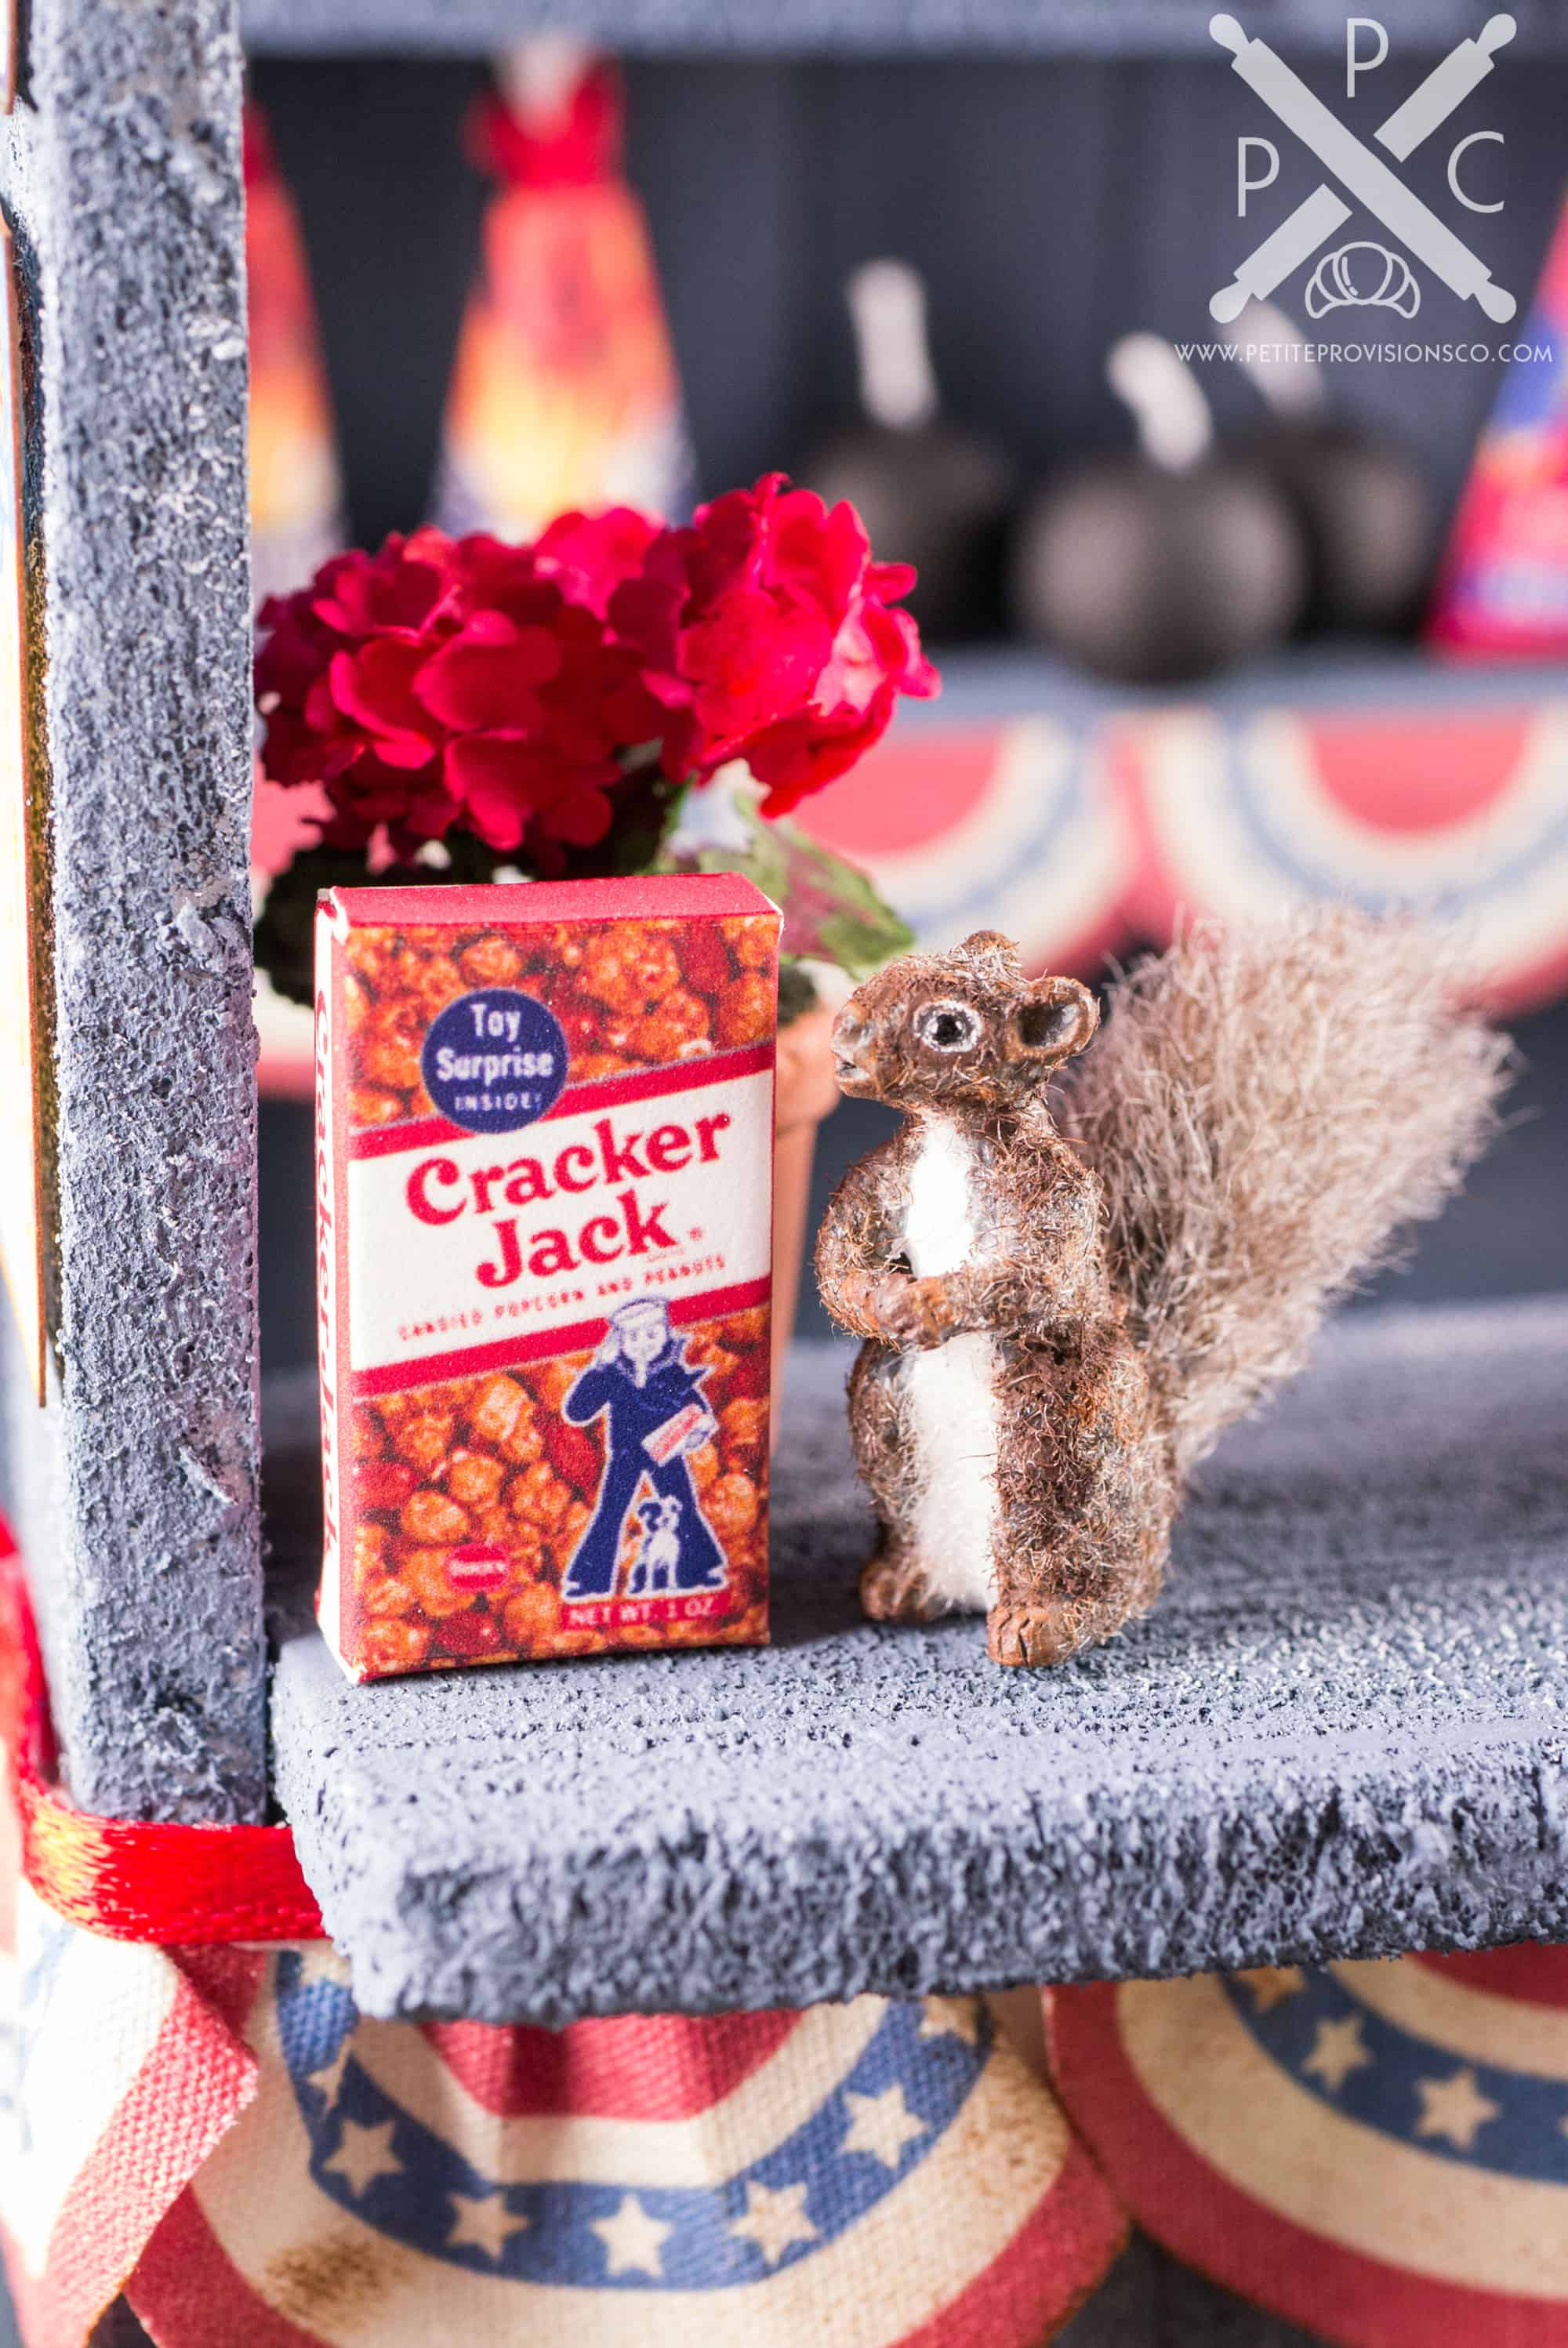 Dollhouse Miniature Roadside Fireworks Stand by The Petite Provisions Co. - Mini Squirrel and Cracker Jack Box